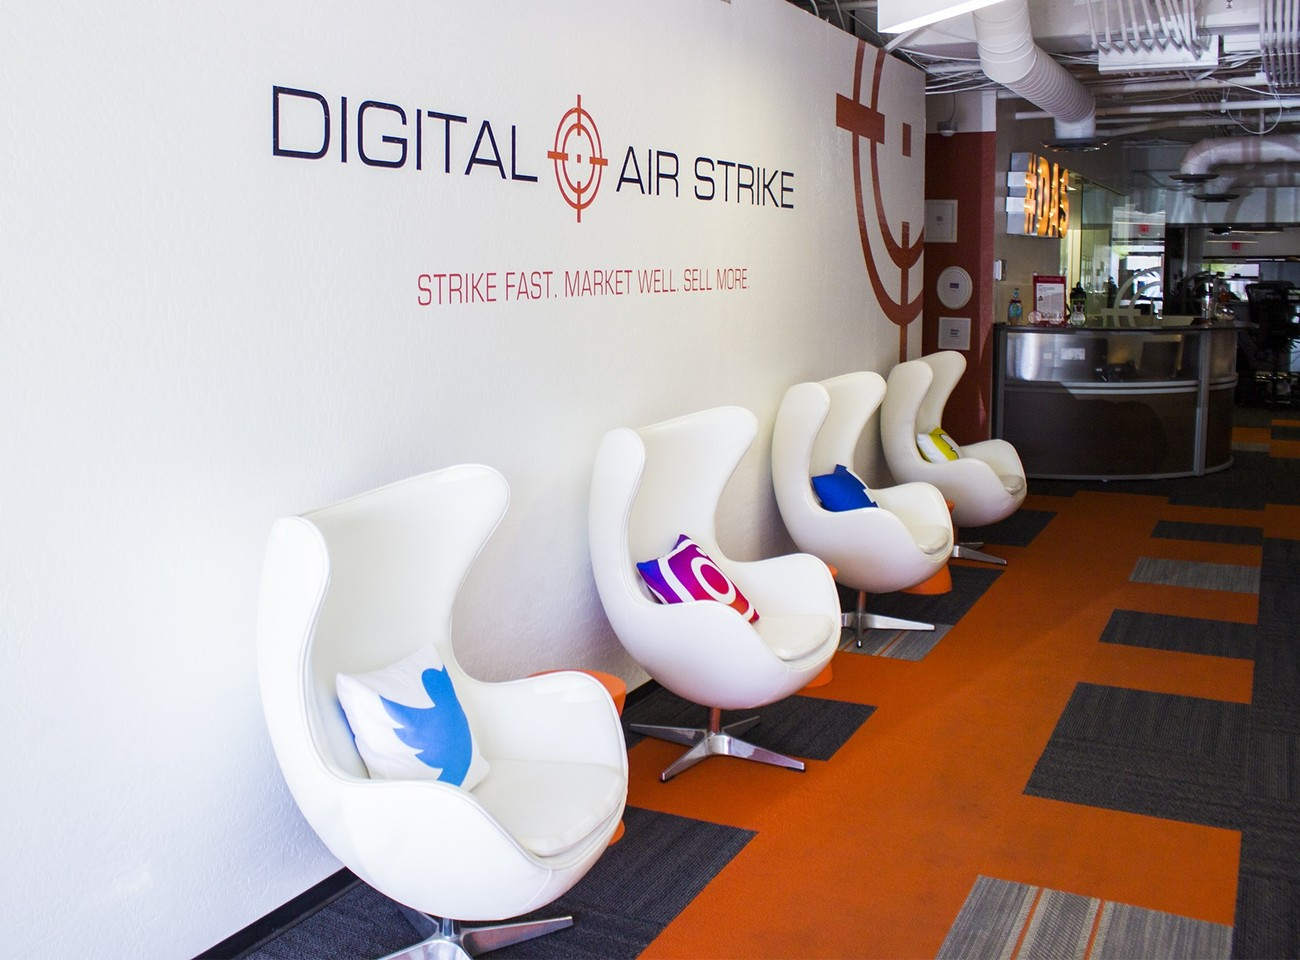 Digital Air Strike Careers